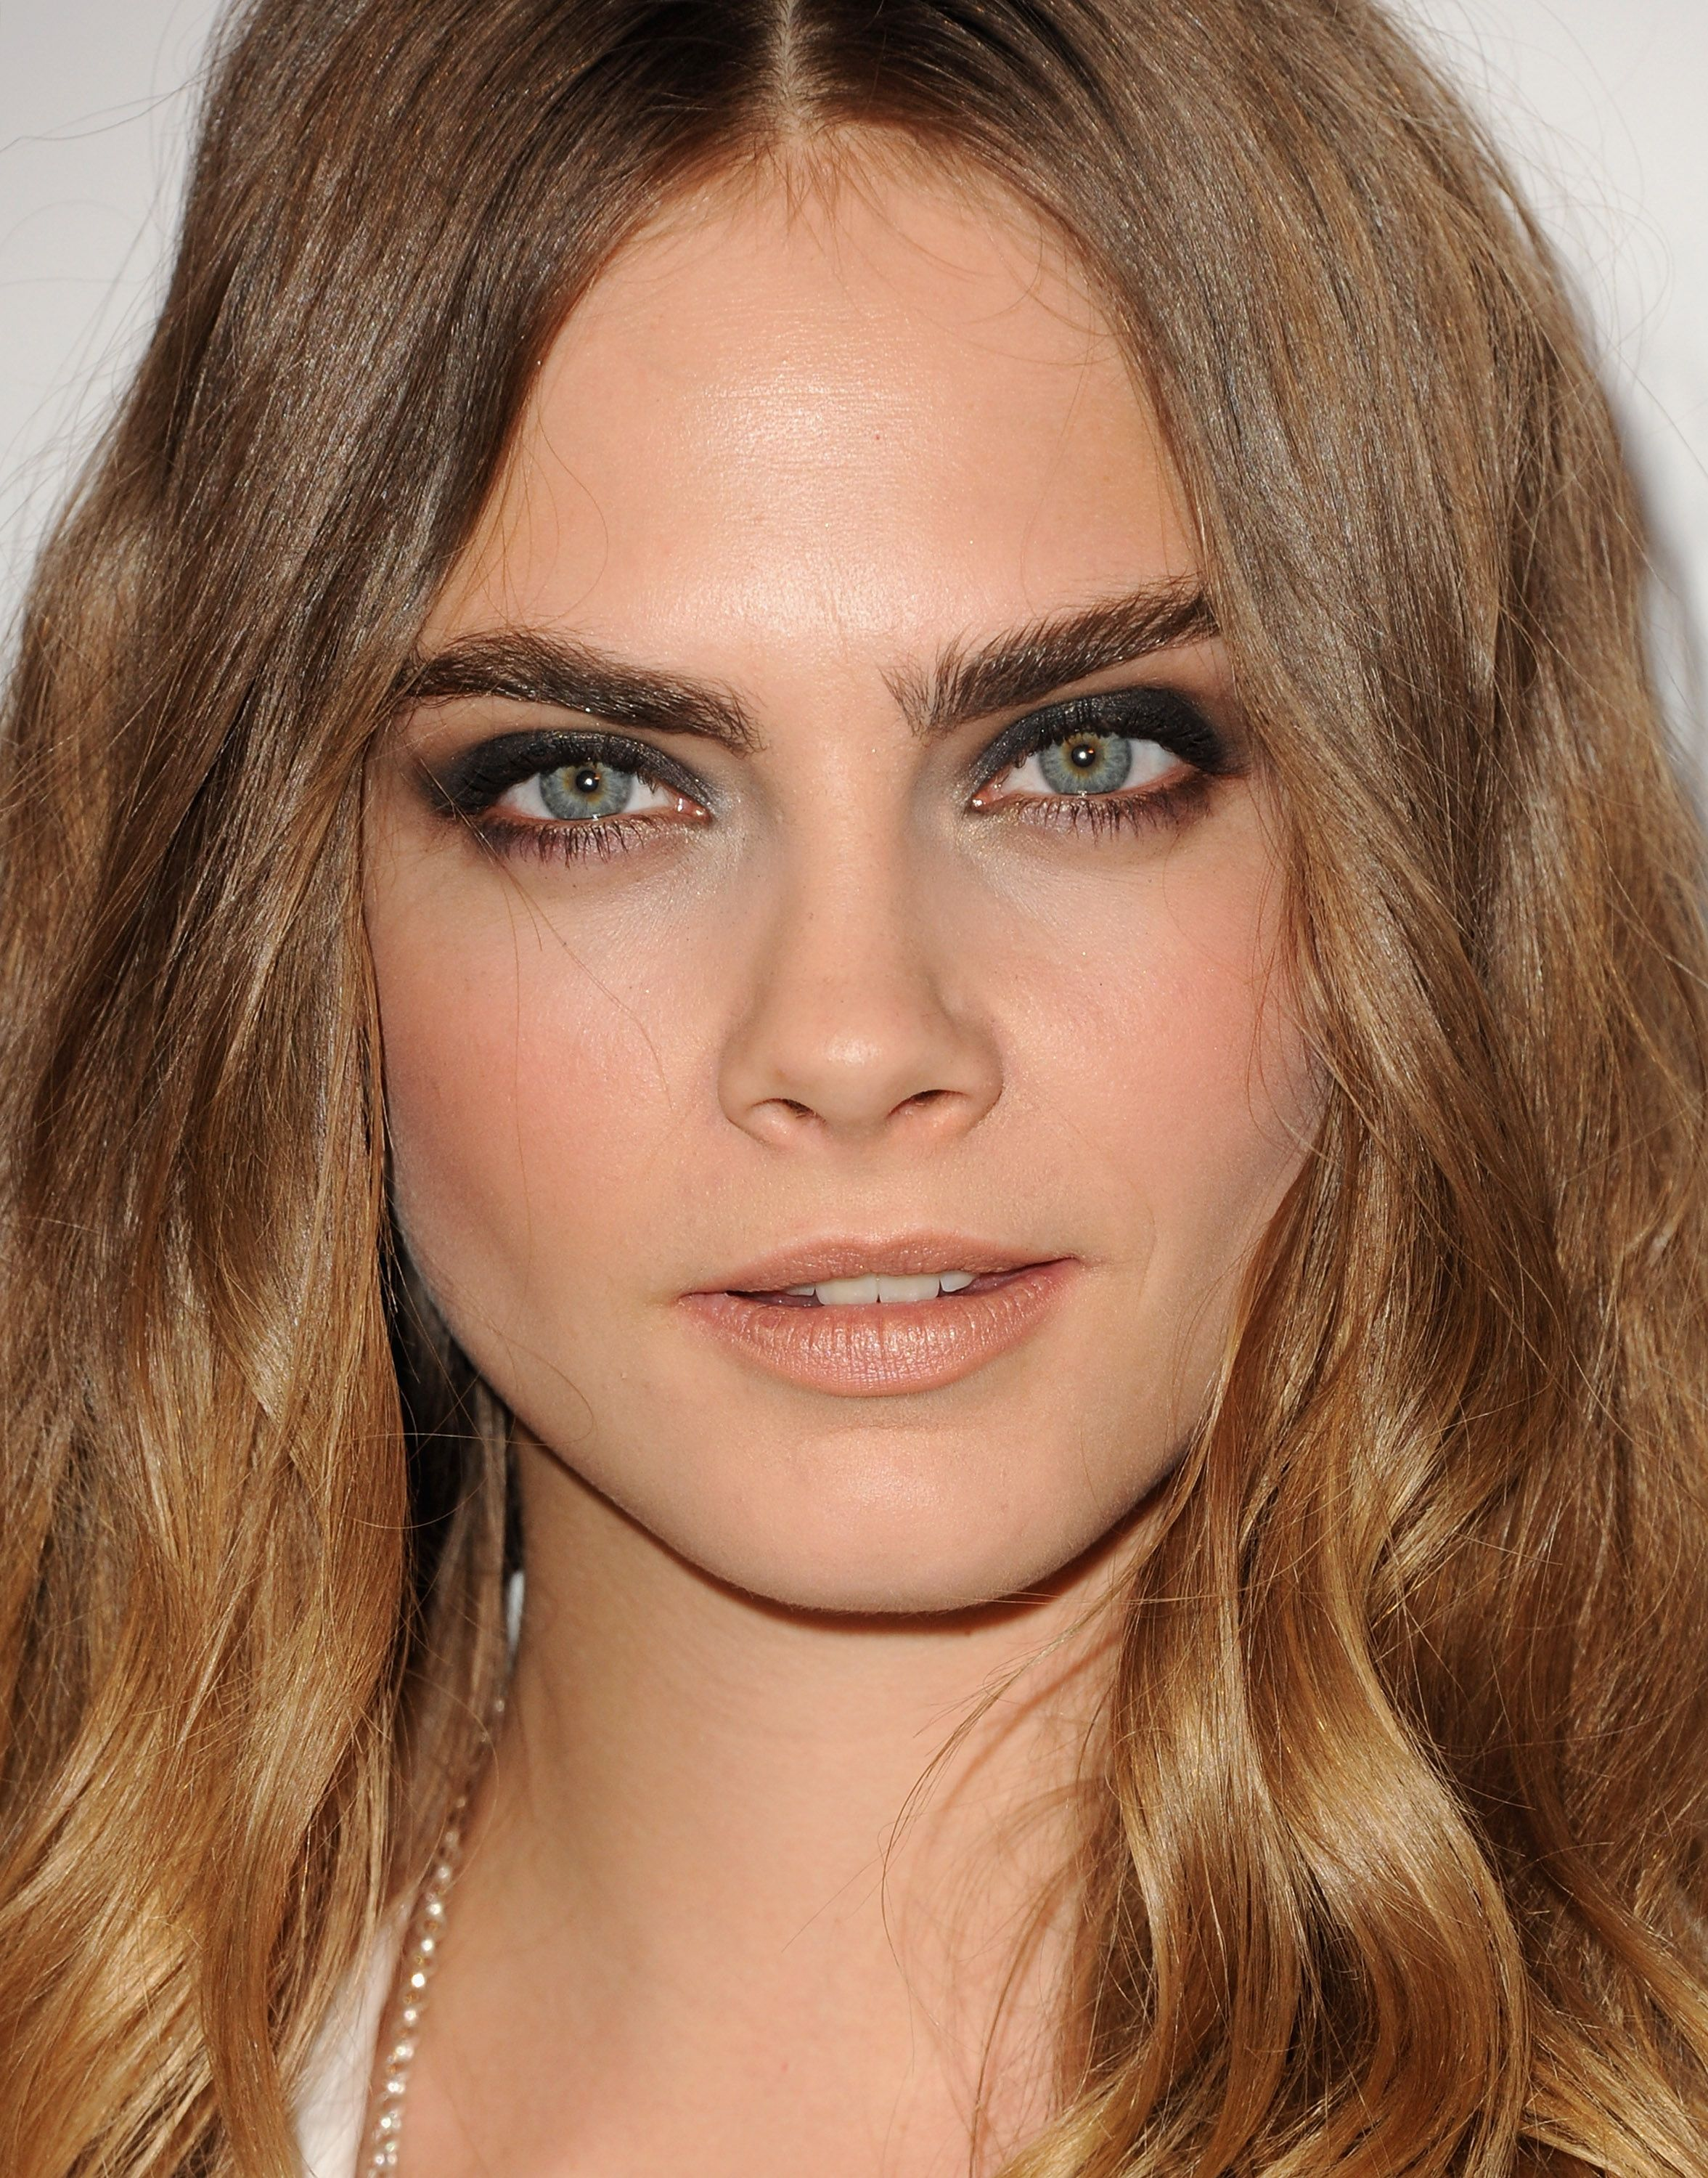 This Is What Cara Delevingne Does To Get Her Famous Eyebrows